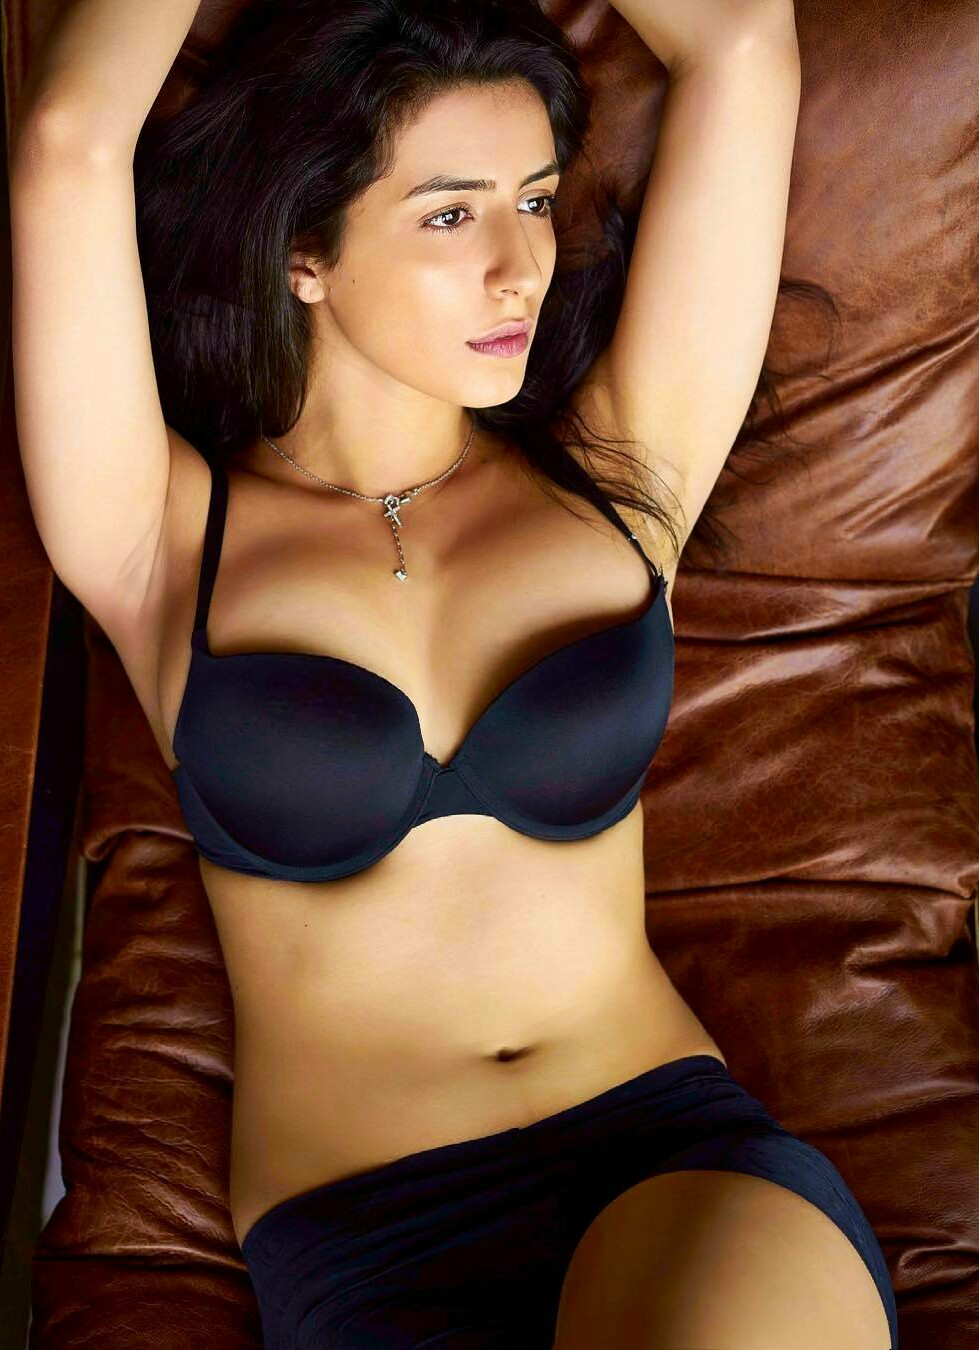 South Indian sexy actress in bikini Height, Weight, Age, Body Measurement, Wedding, Bra Size, Husband, DOB, instagram, facebook, twitter, wiki